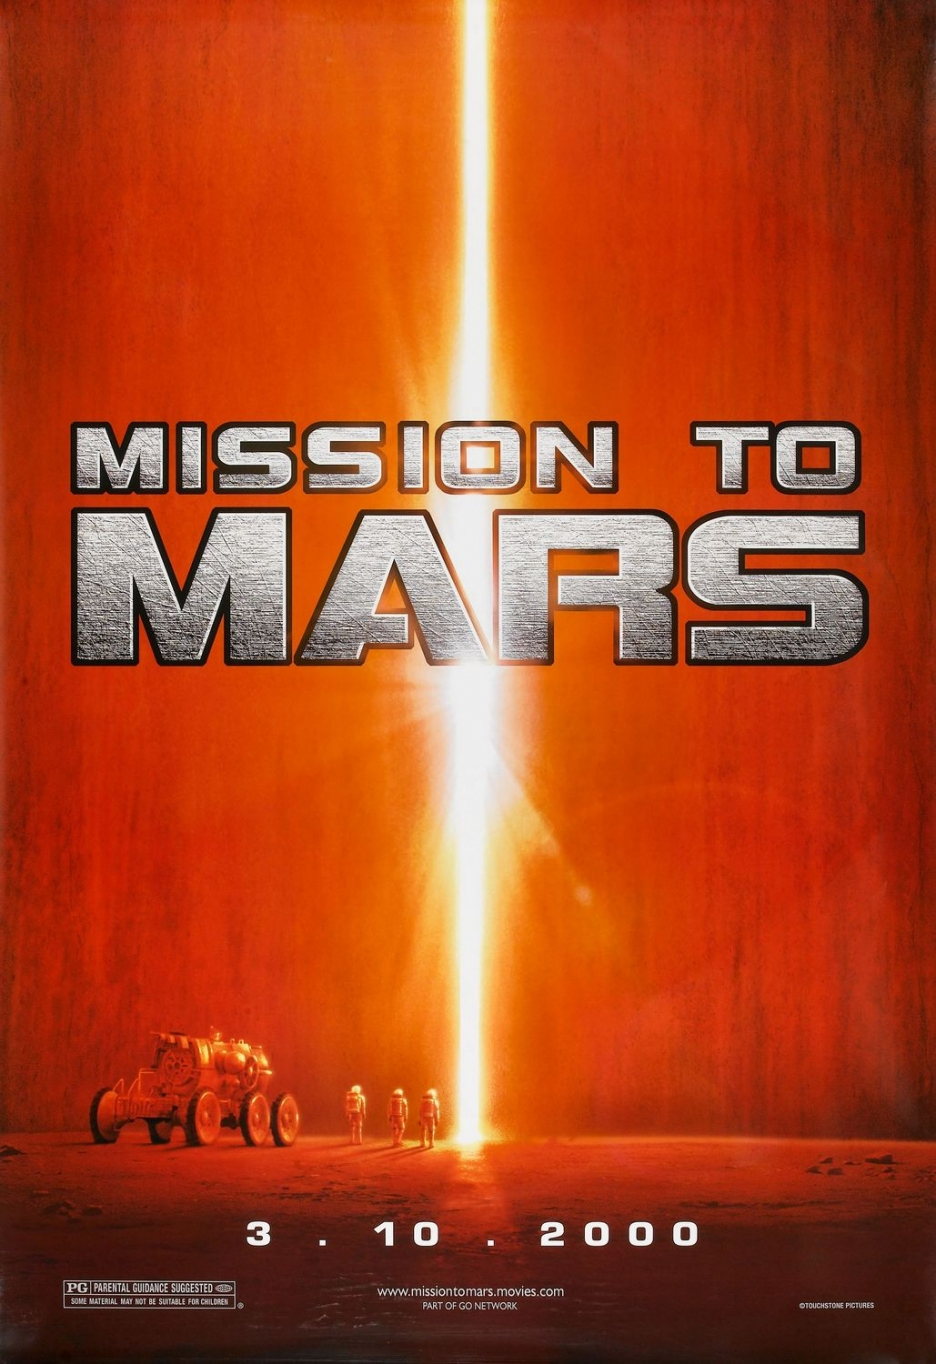 when is the mission to mars